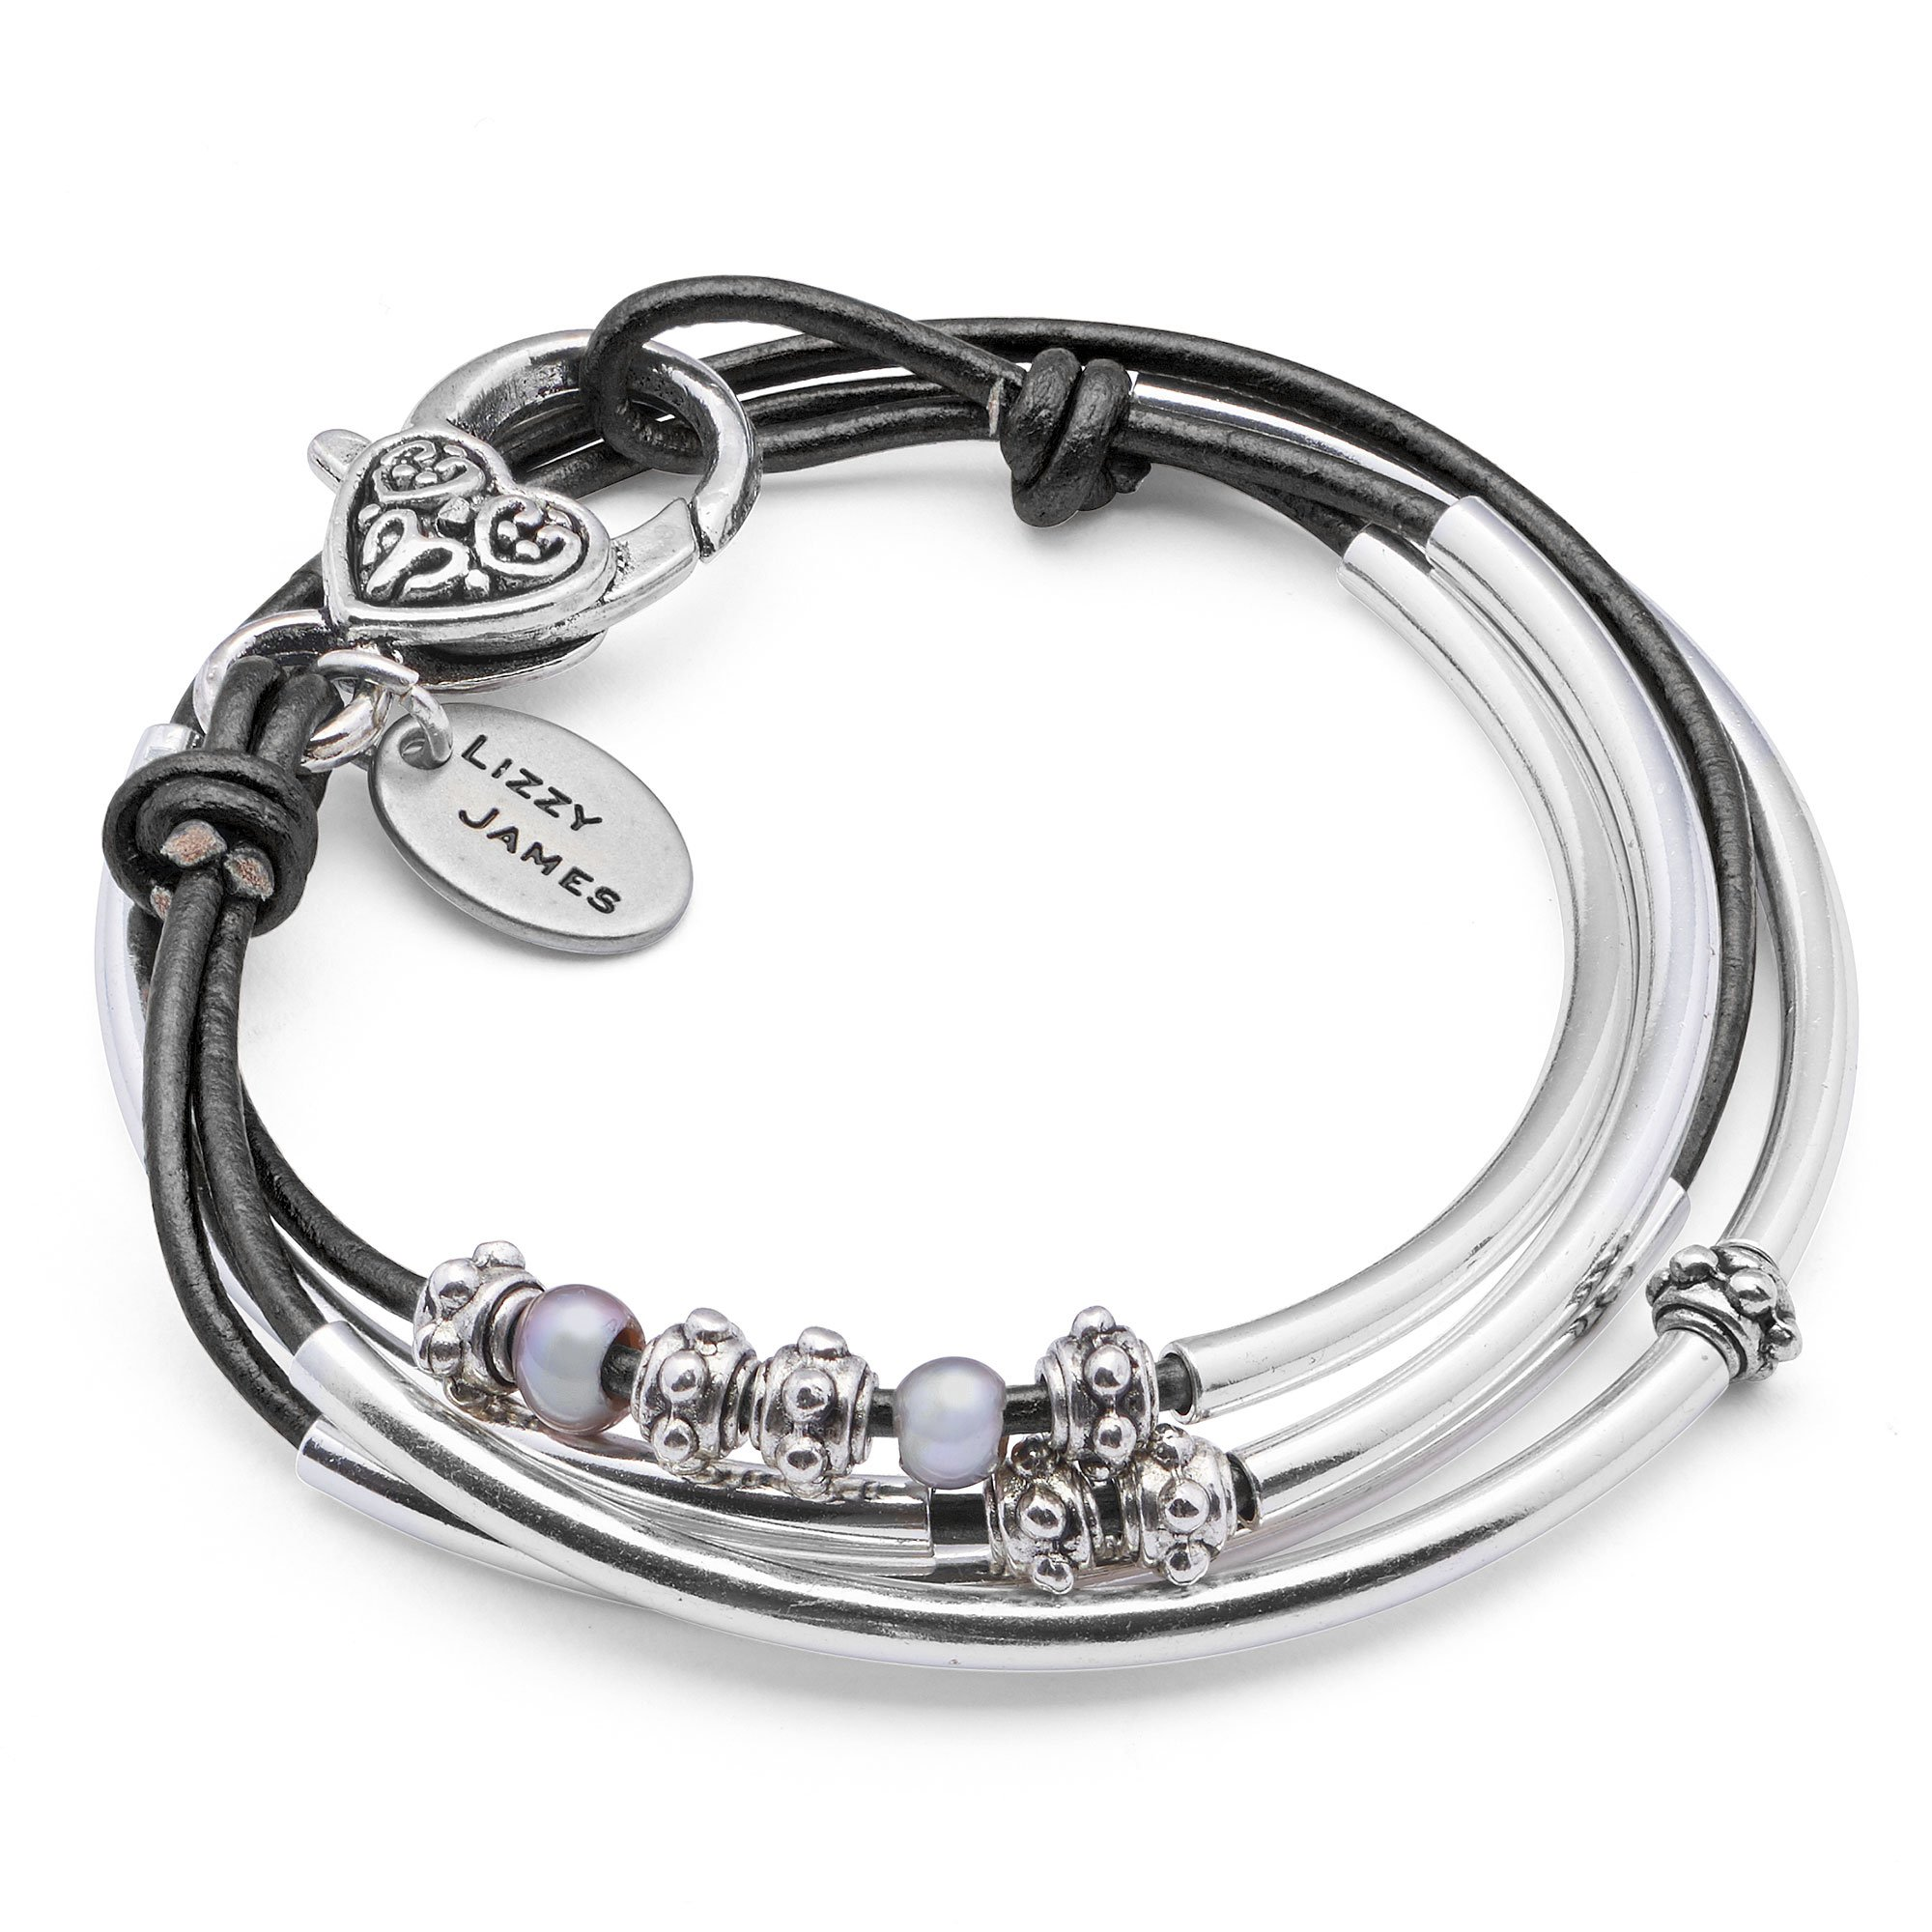 Lizzy James Mini Charmer Natural Black Leather and Silver Plate Wrap Bracelet with Freshwater Pearls (MEDIUM)